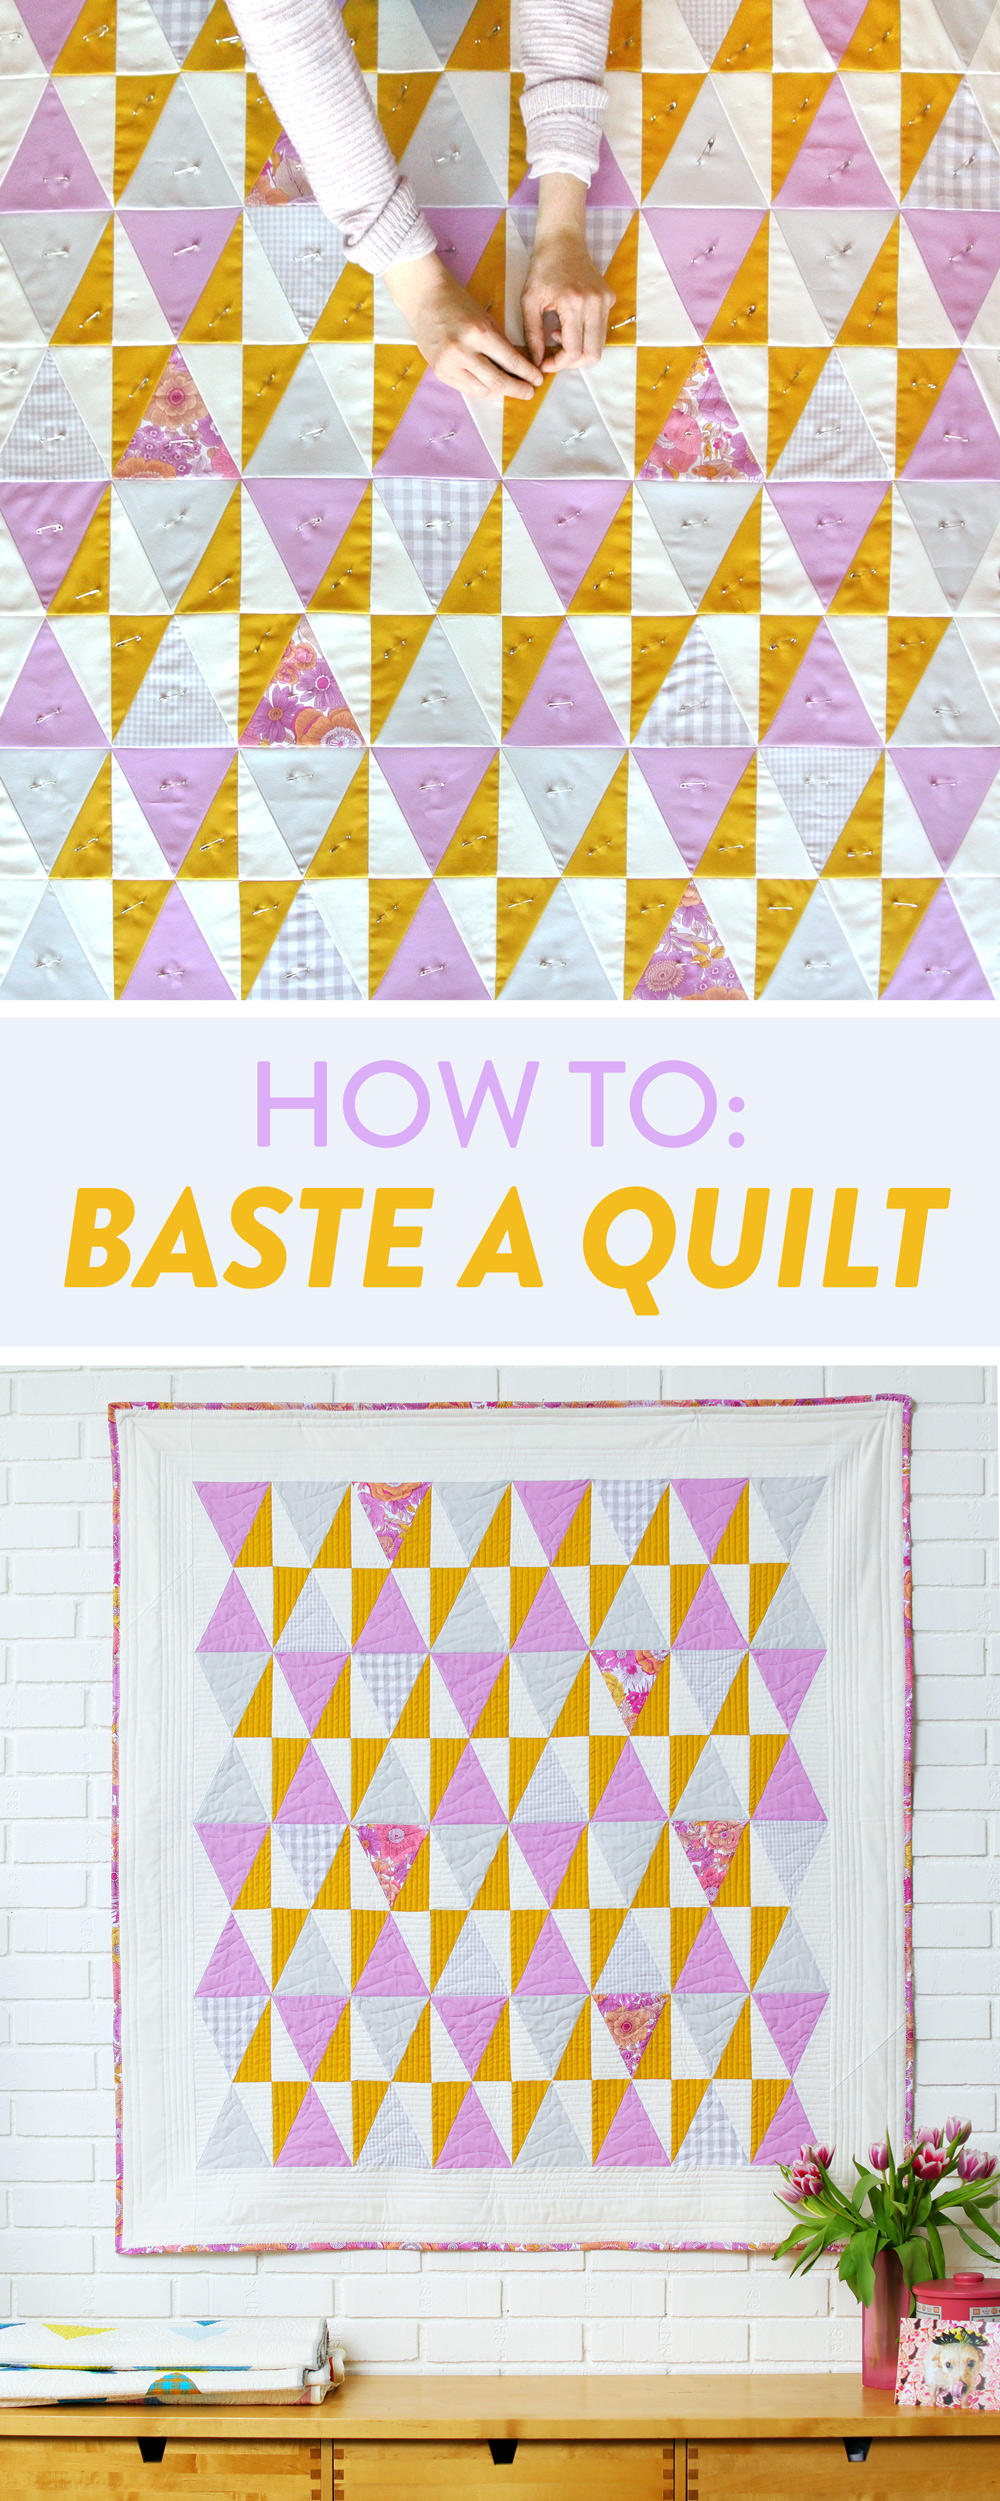 Learn how to baste a quilt 3 different ways including: how to pin baste, how to baste a quilt with boards, and how to spray baste | Suzy Quilts https://suzyquilts.com/how-to-baste-a-quilt